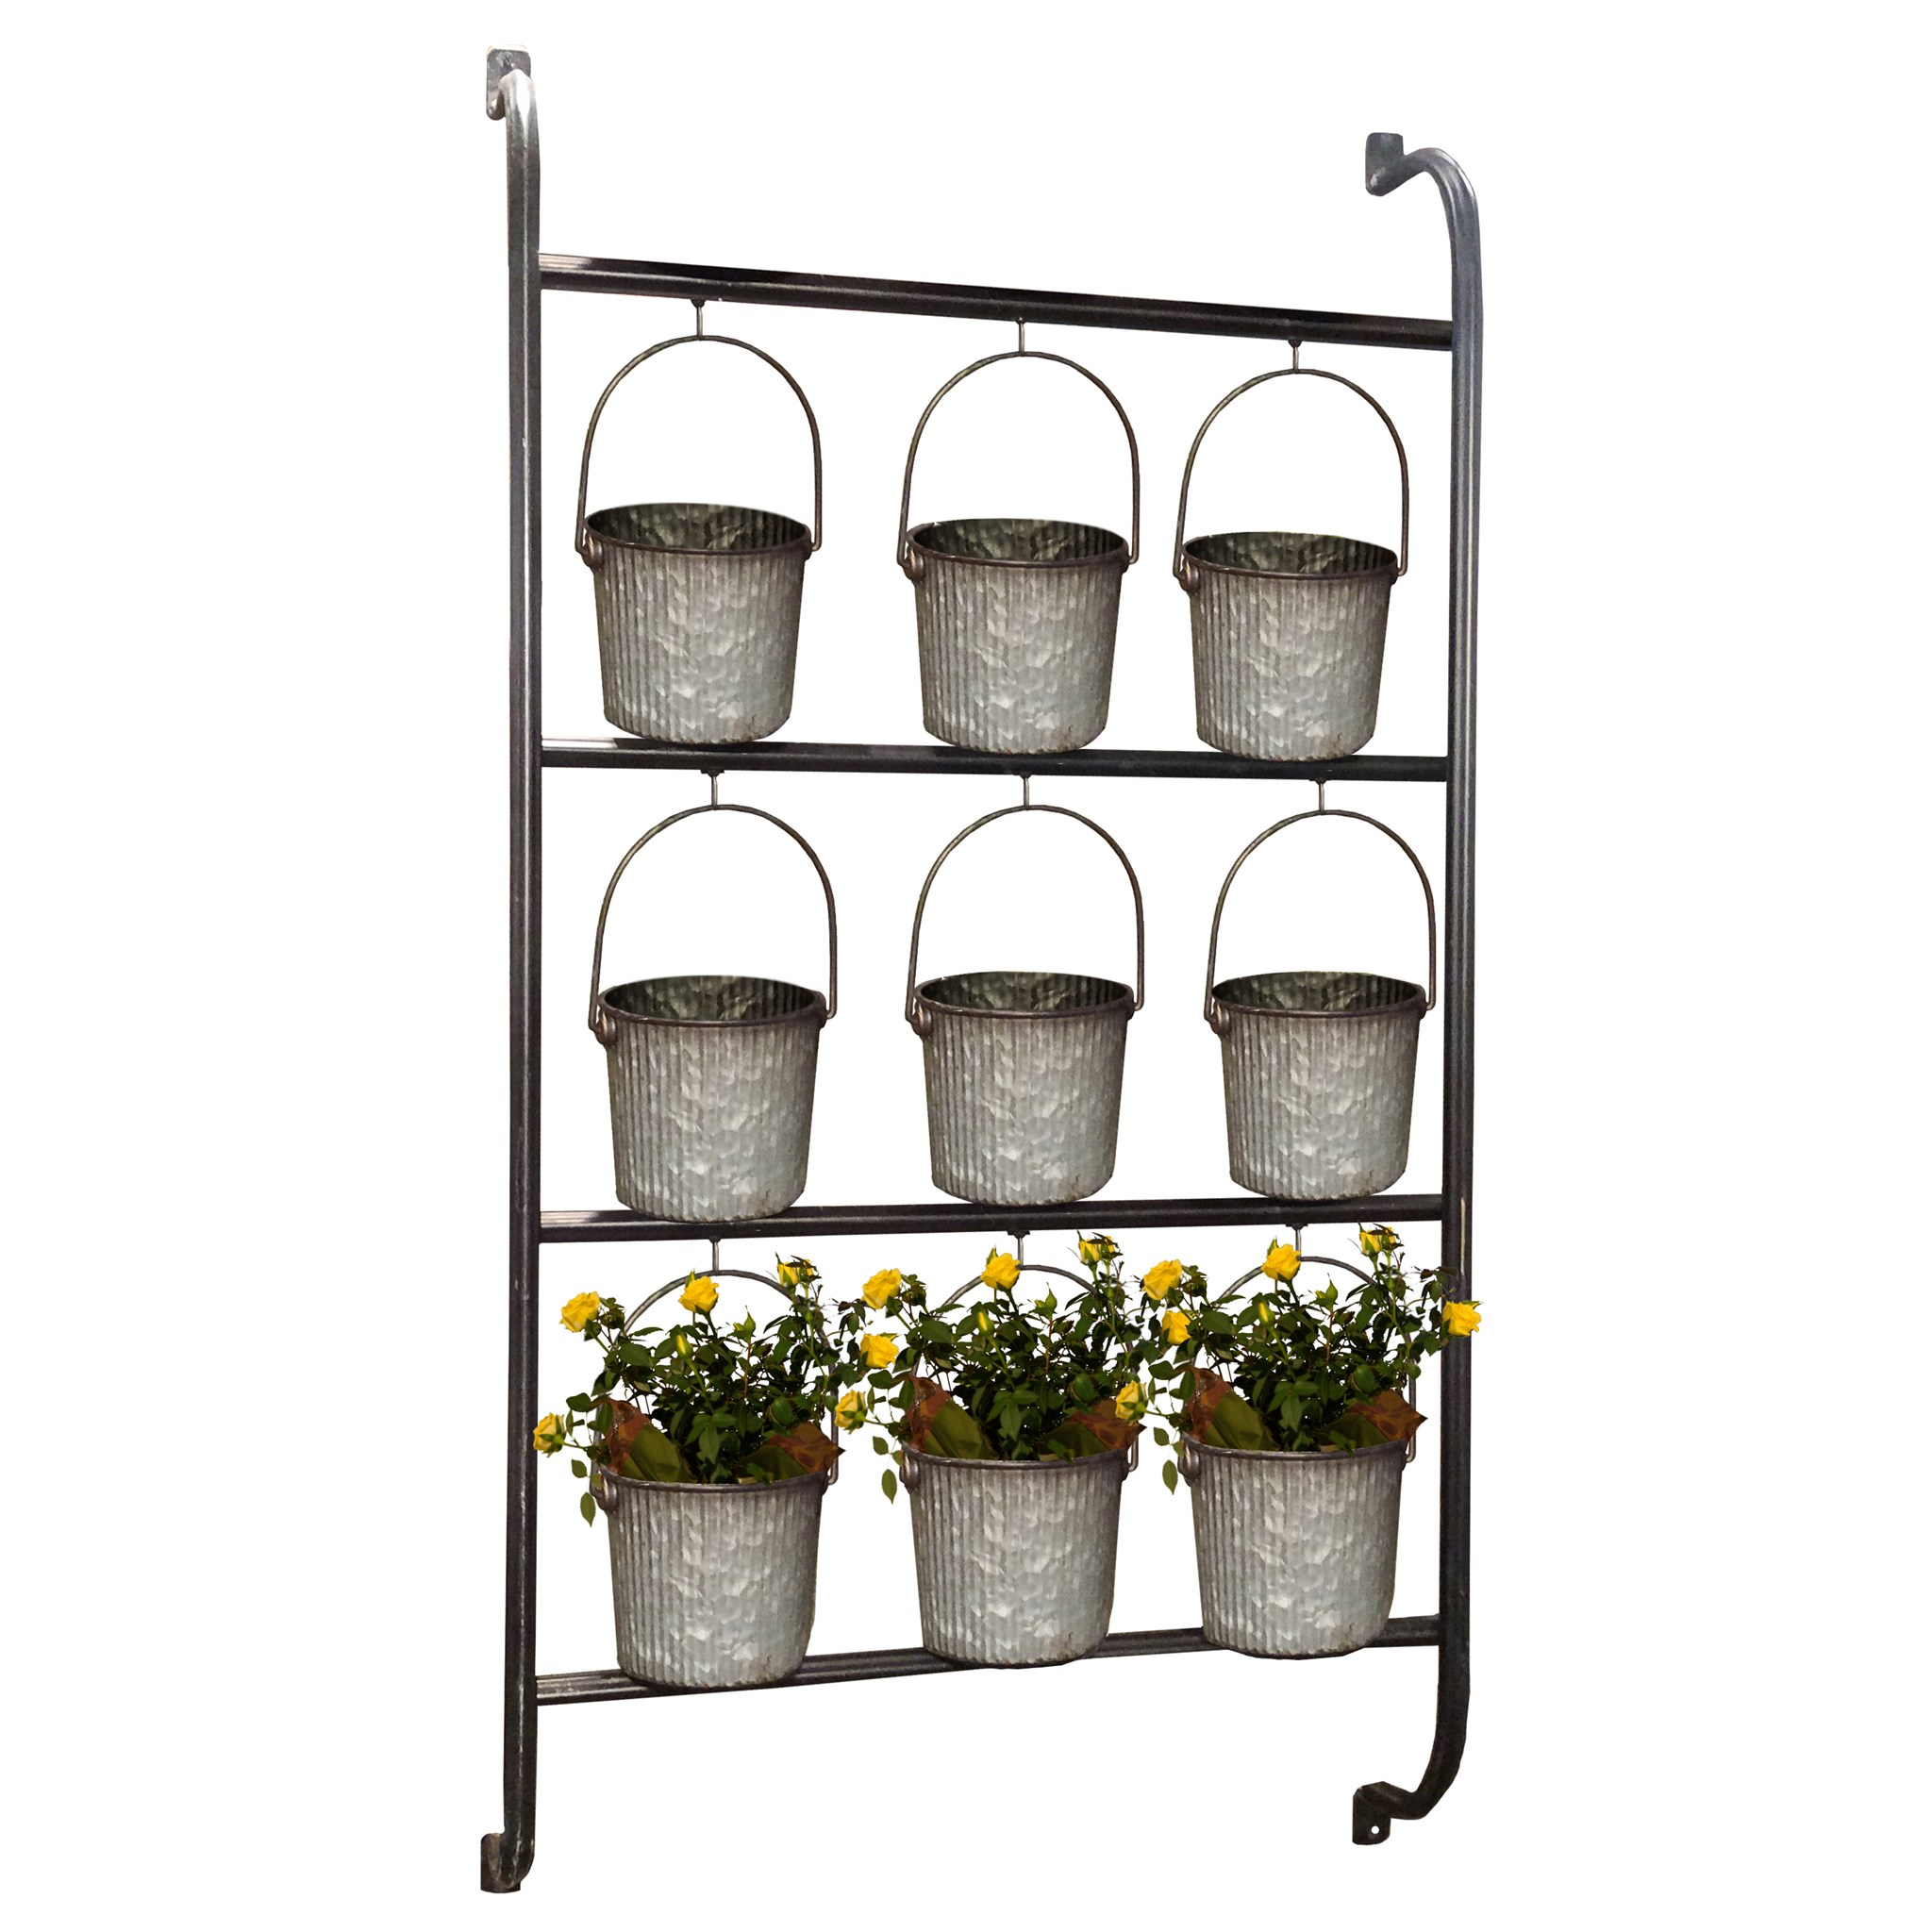 Wall Planter with Buckets, $129.99